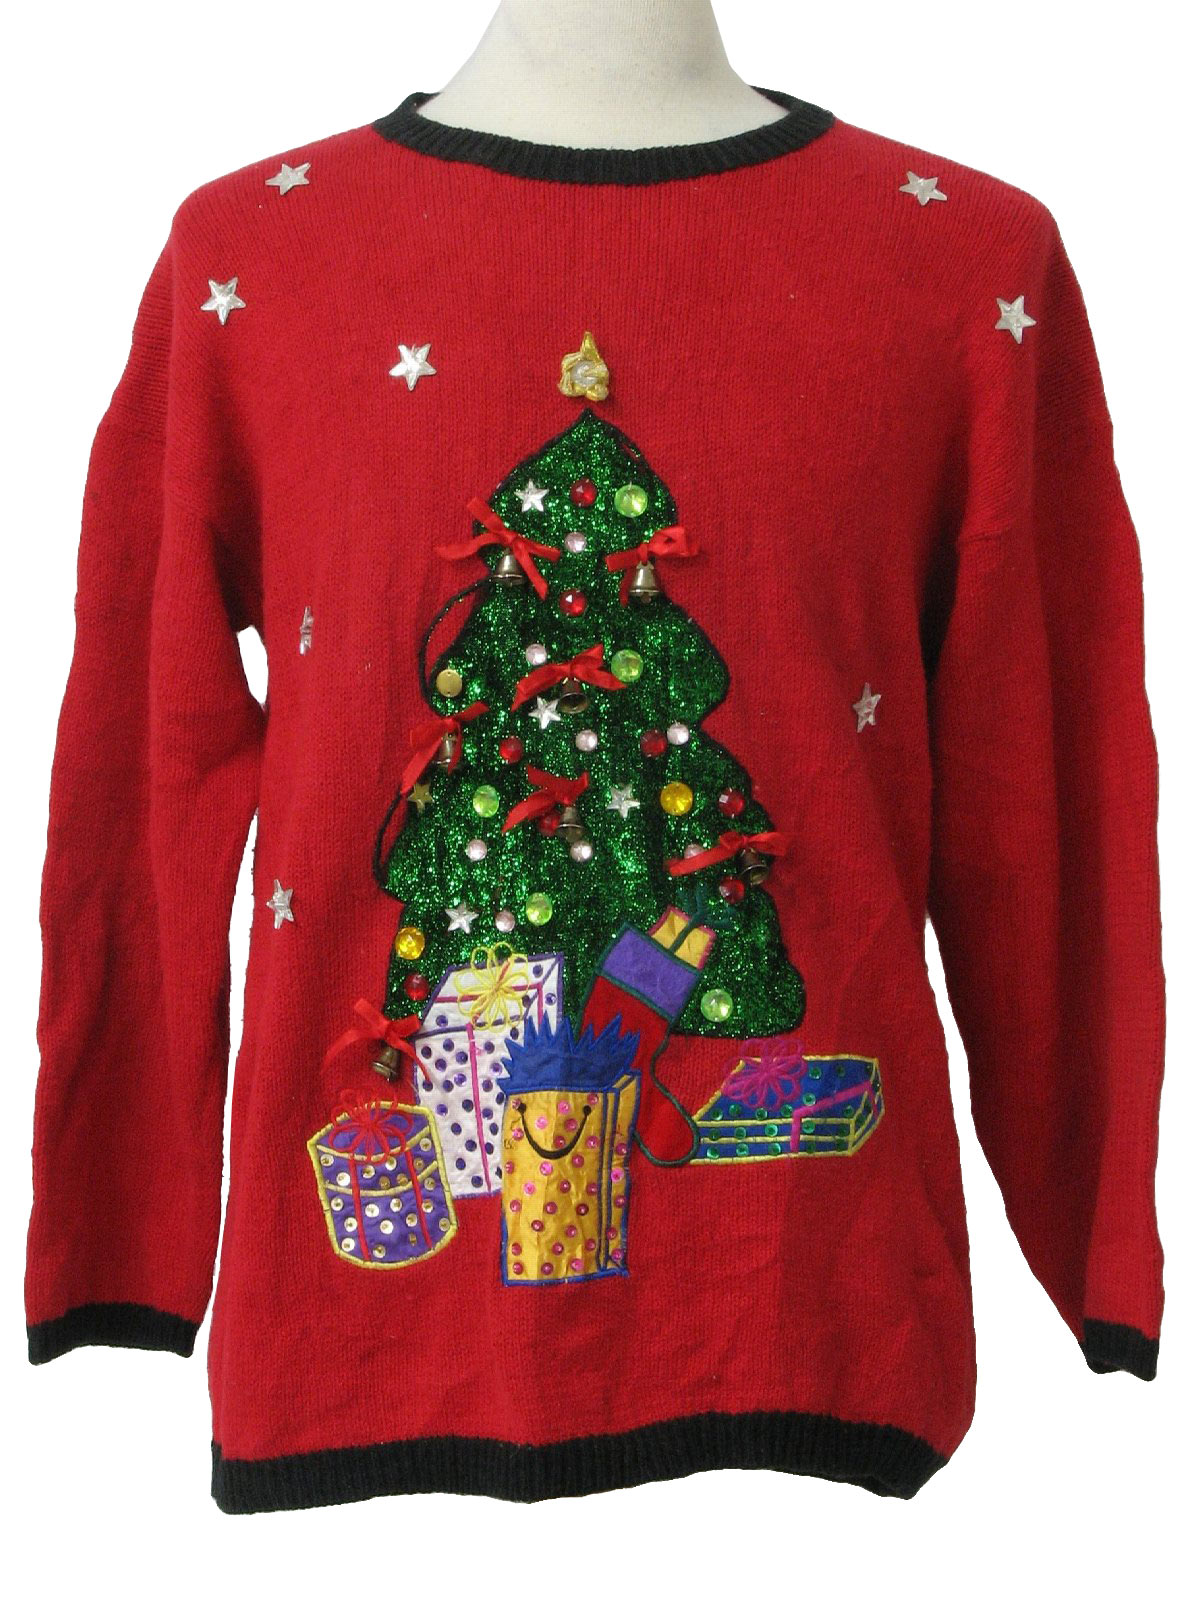 Ugly christmas sweater fashion only unisex red black for Over the top ugly christmas sweaters